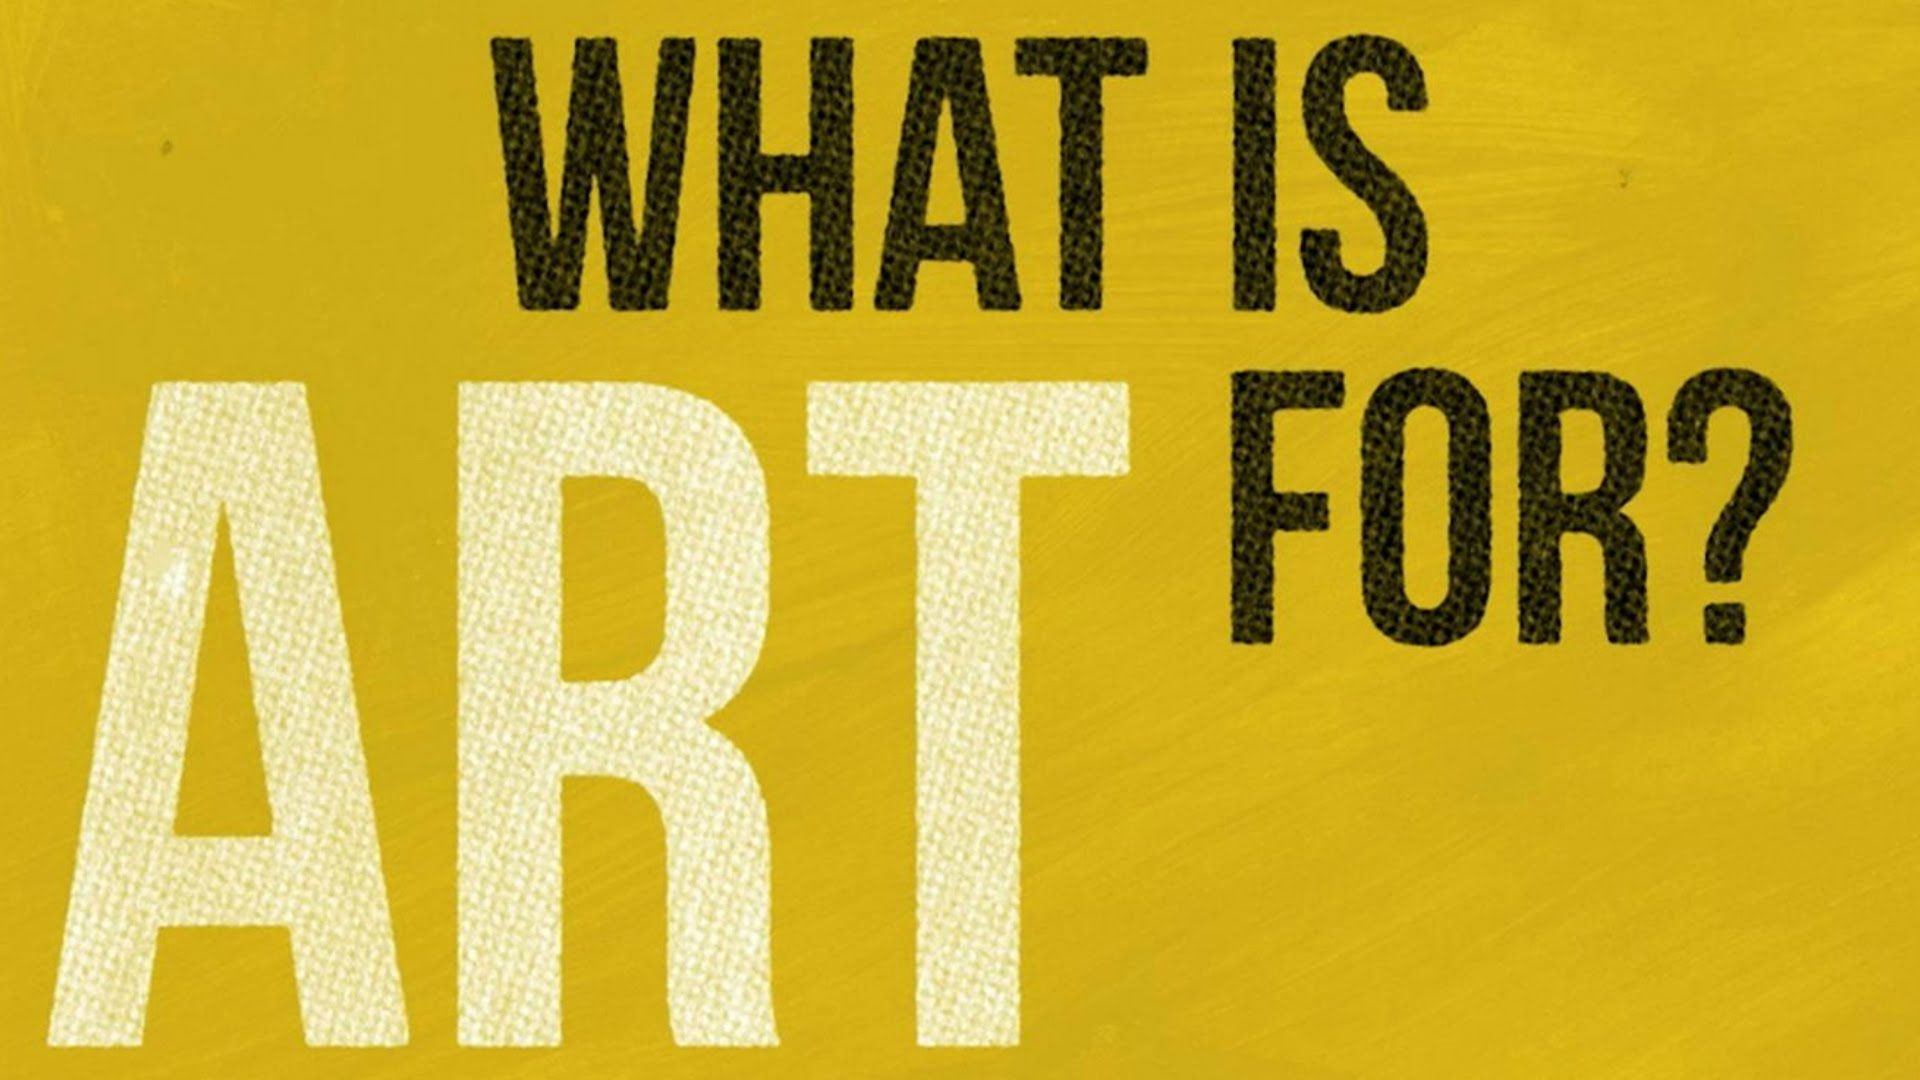 What Is Art And Design : What is art for alain de botton s animated guide and design